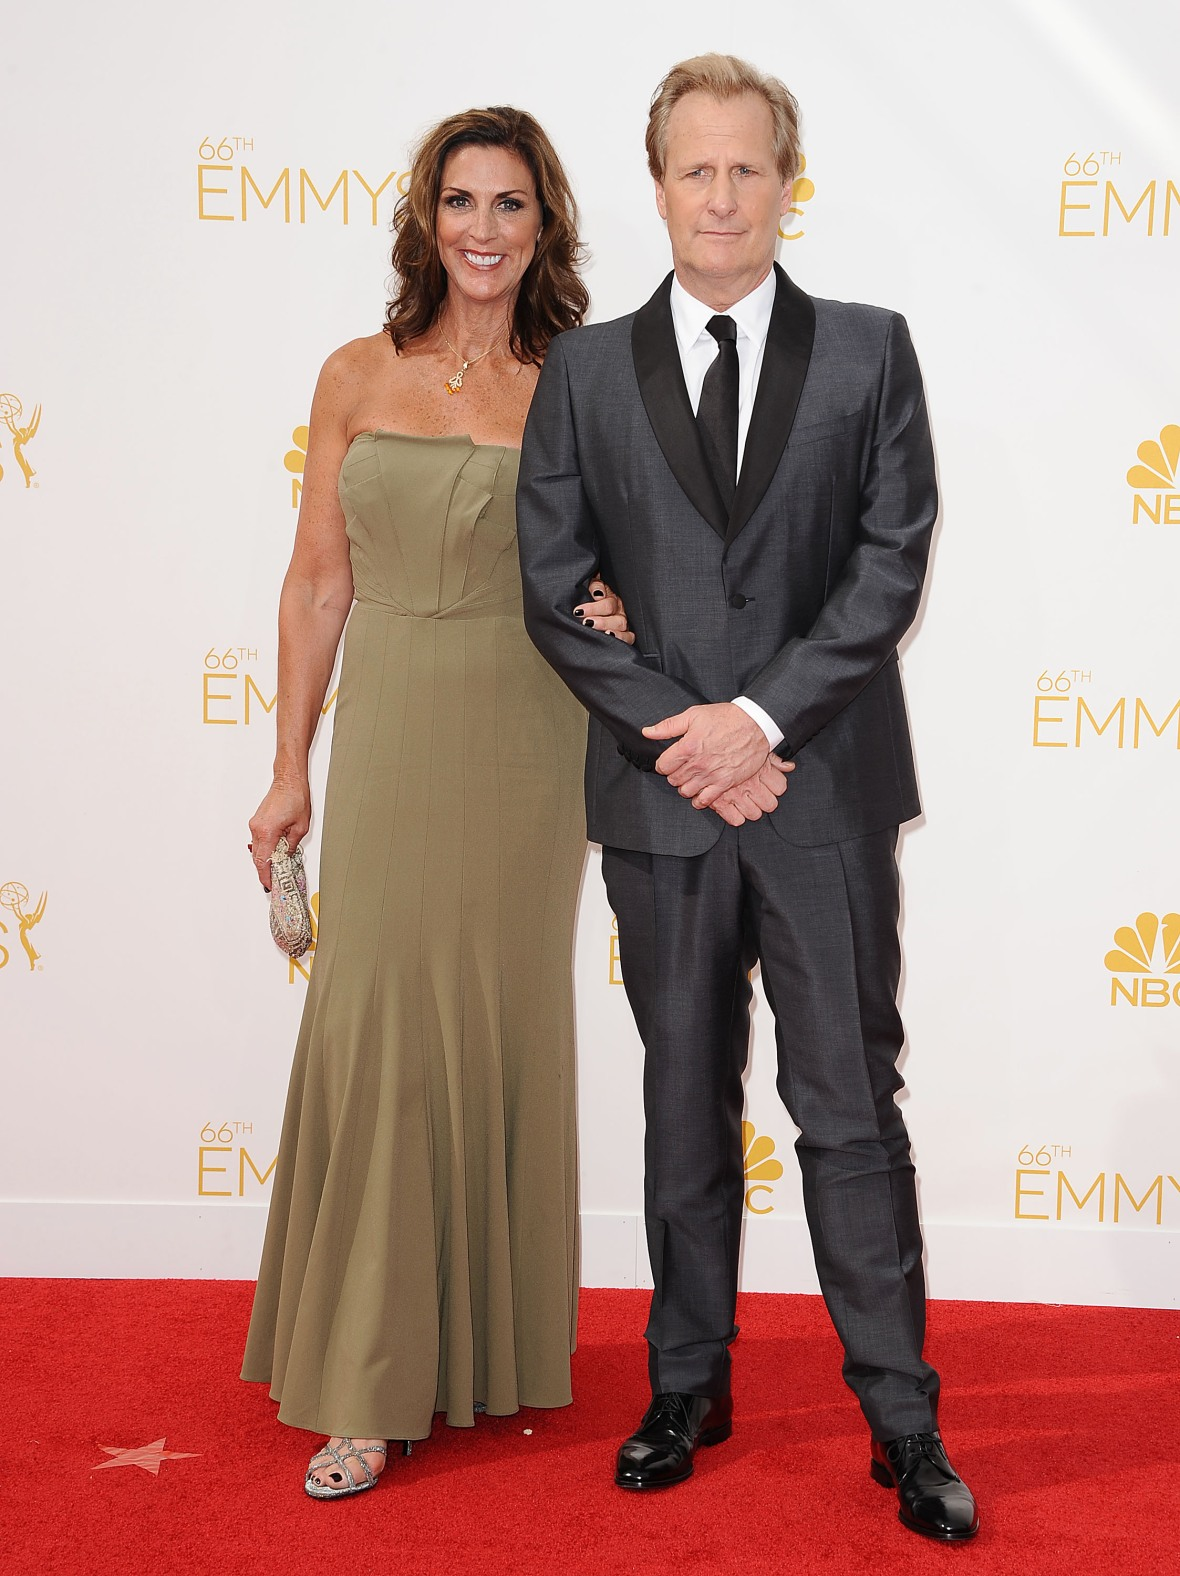 jeff daniels and his wife getty images